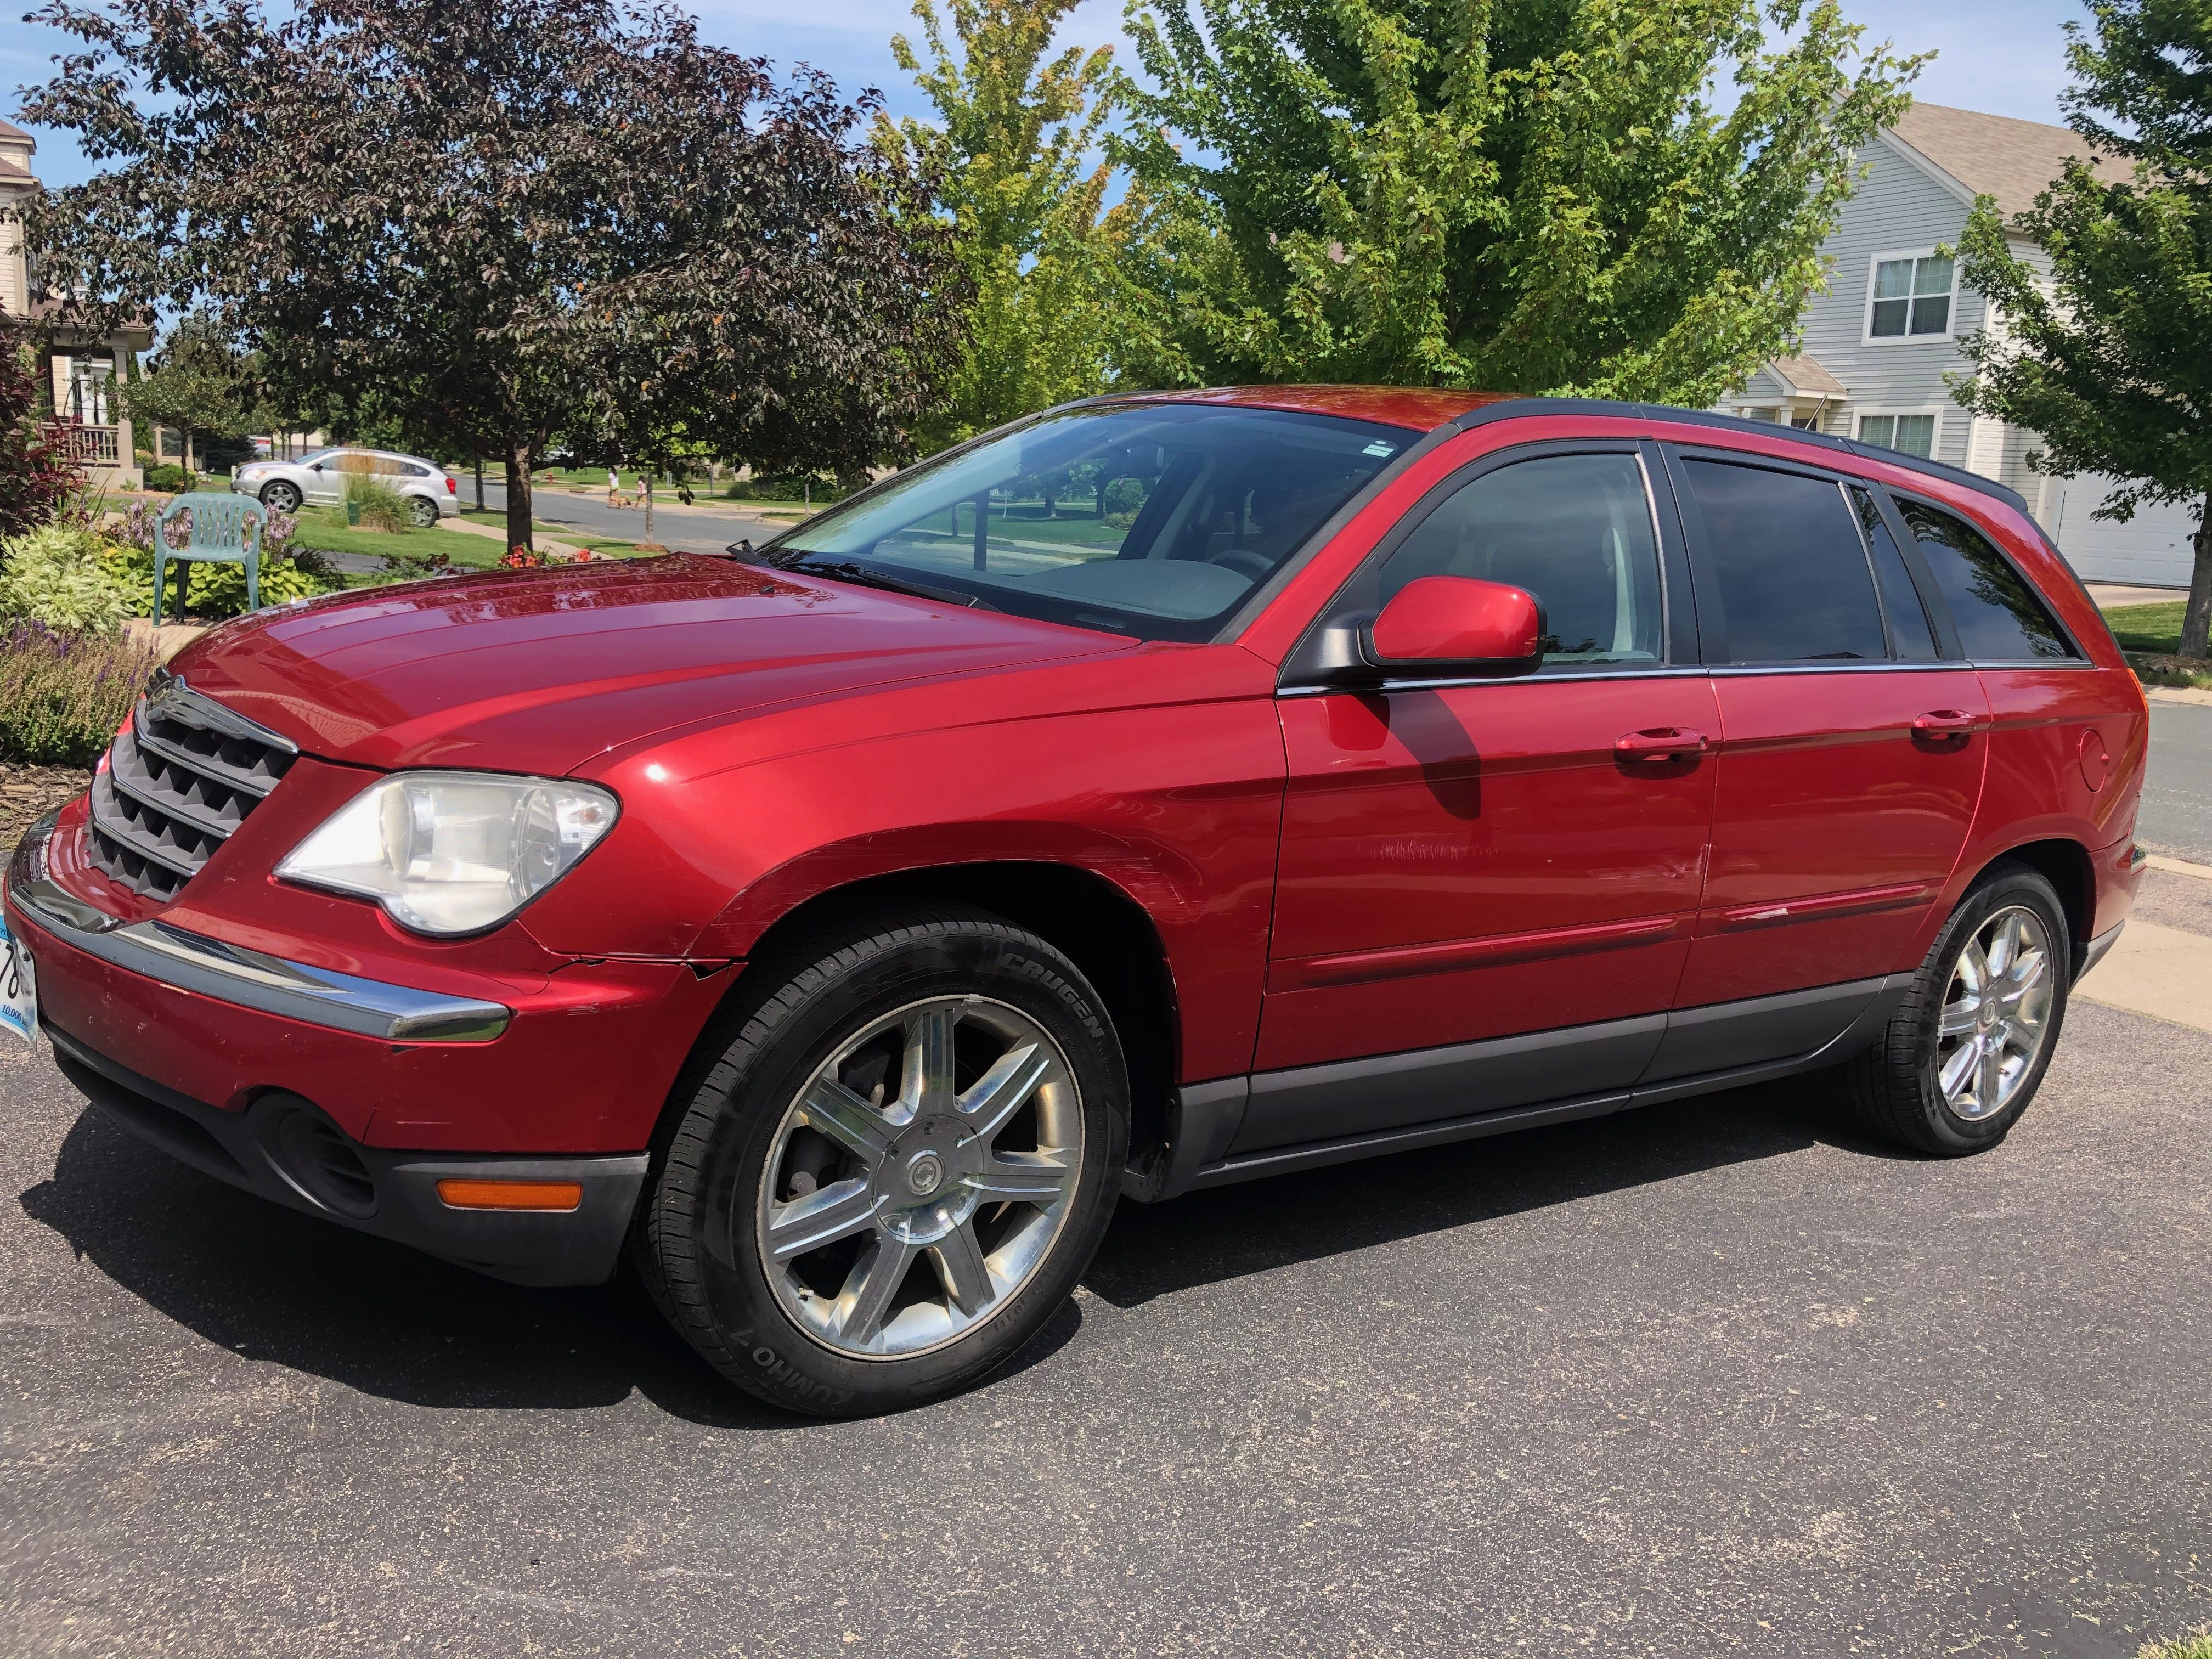 2007 Chrysler Pacifica image 2